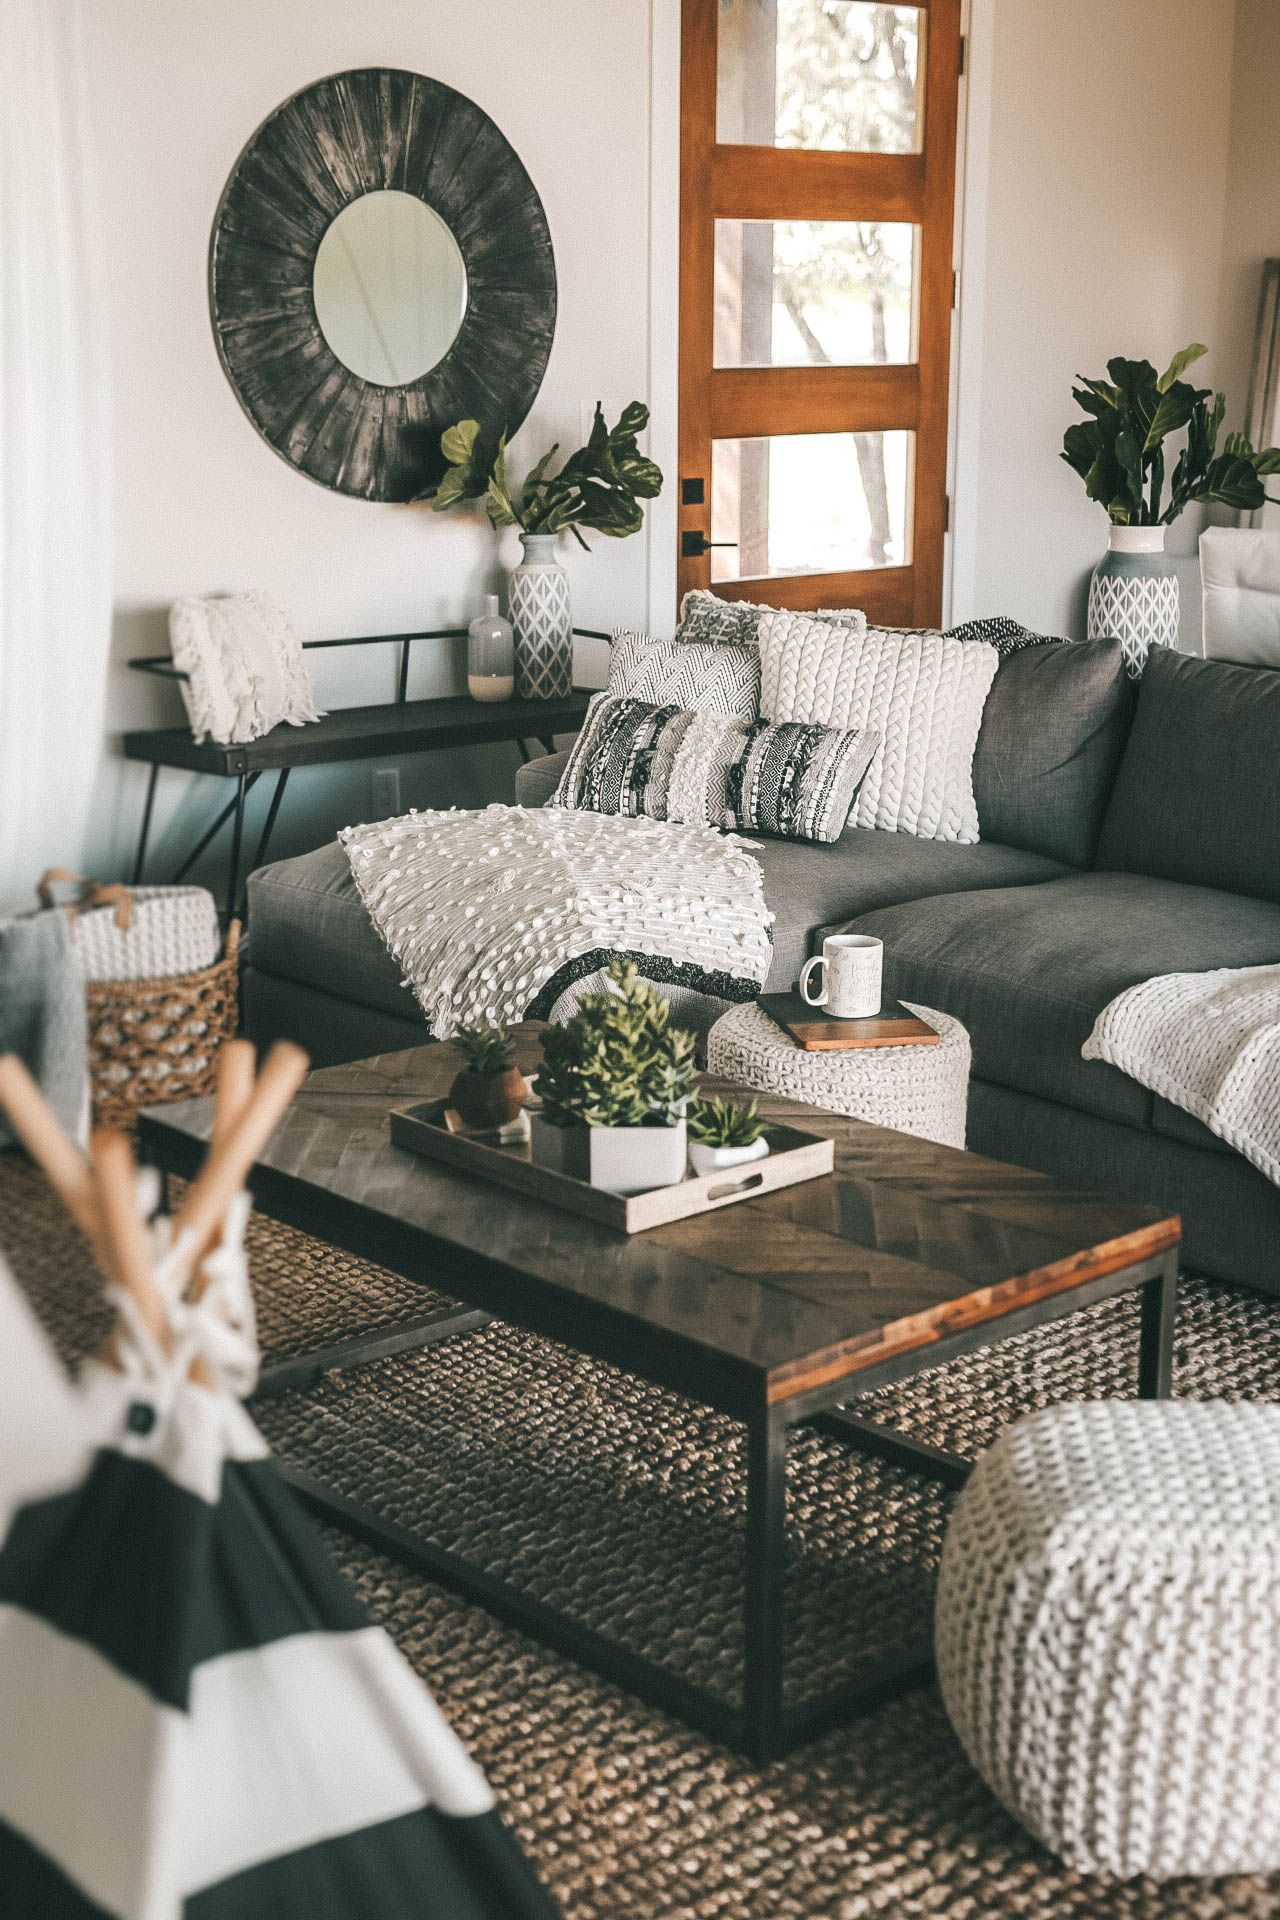 Fall Home Decor for a Cozier Home with Nordstrom Decor | DTK Austin ...